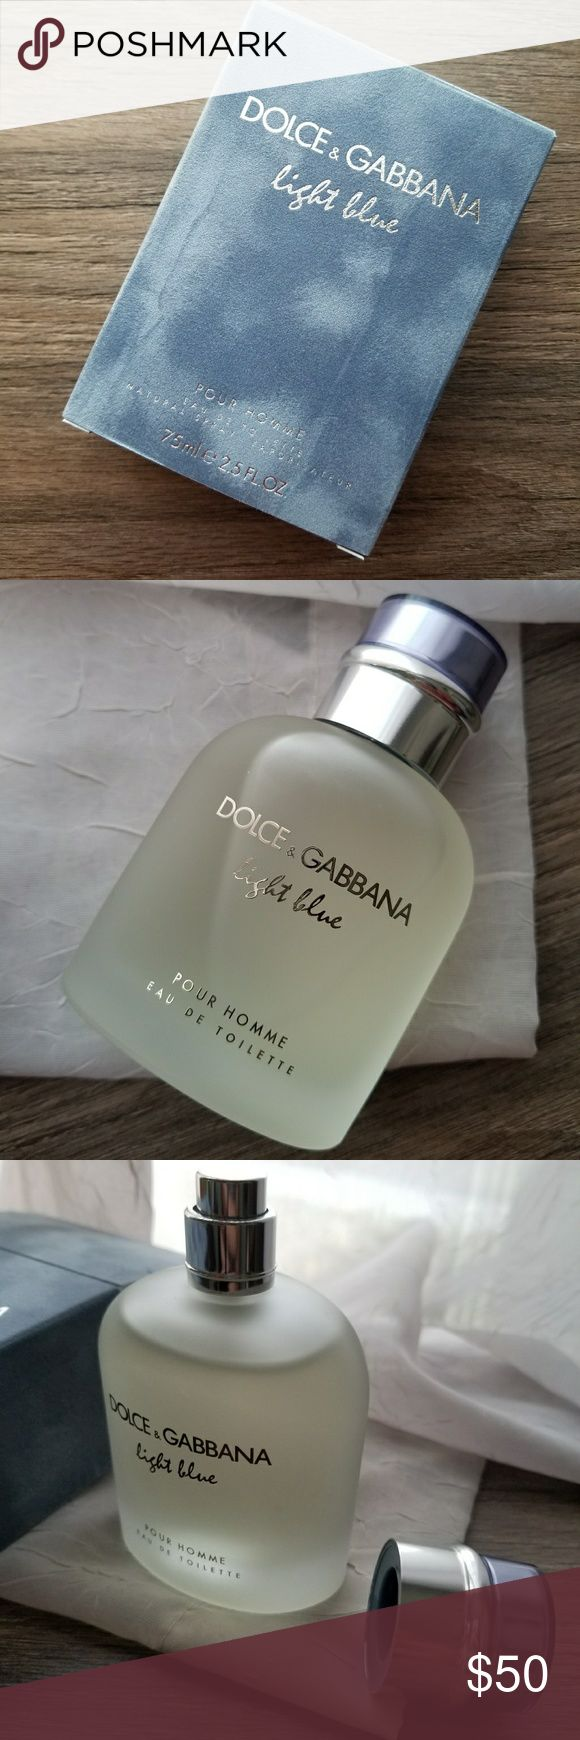 Dolce & Gabbana Light Blue EDT for men New in box, Dolce & Gabbana Light Blue Eau De Toilette Pour Homme. 75ml/ 2.5 fl oz glass bottle, never used. If you have any questions, let me know! Dolce & Gabbana Other